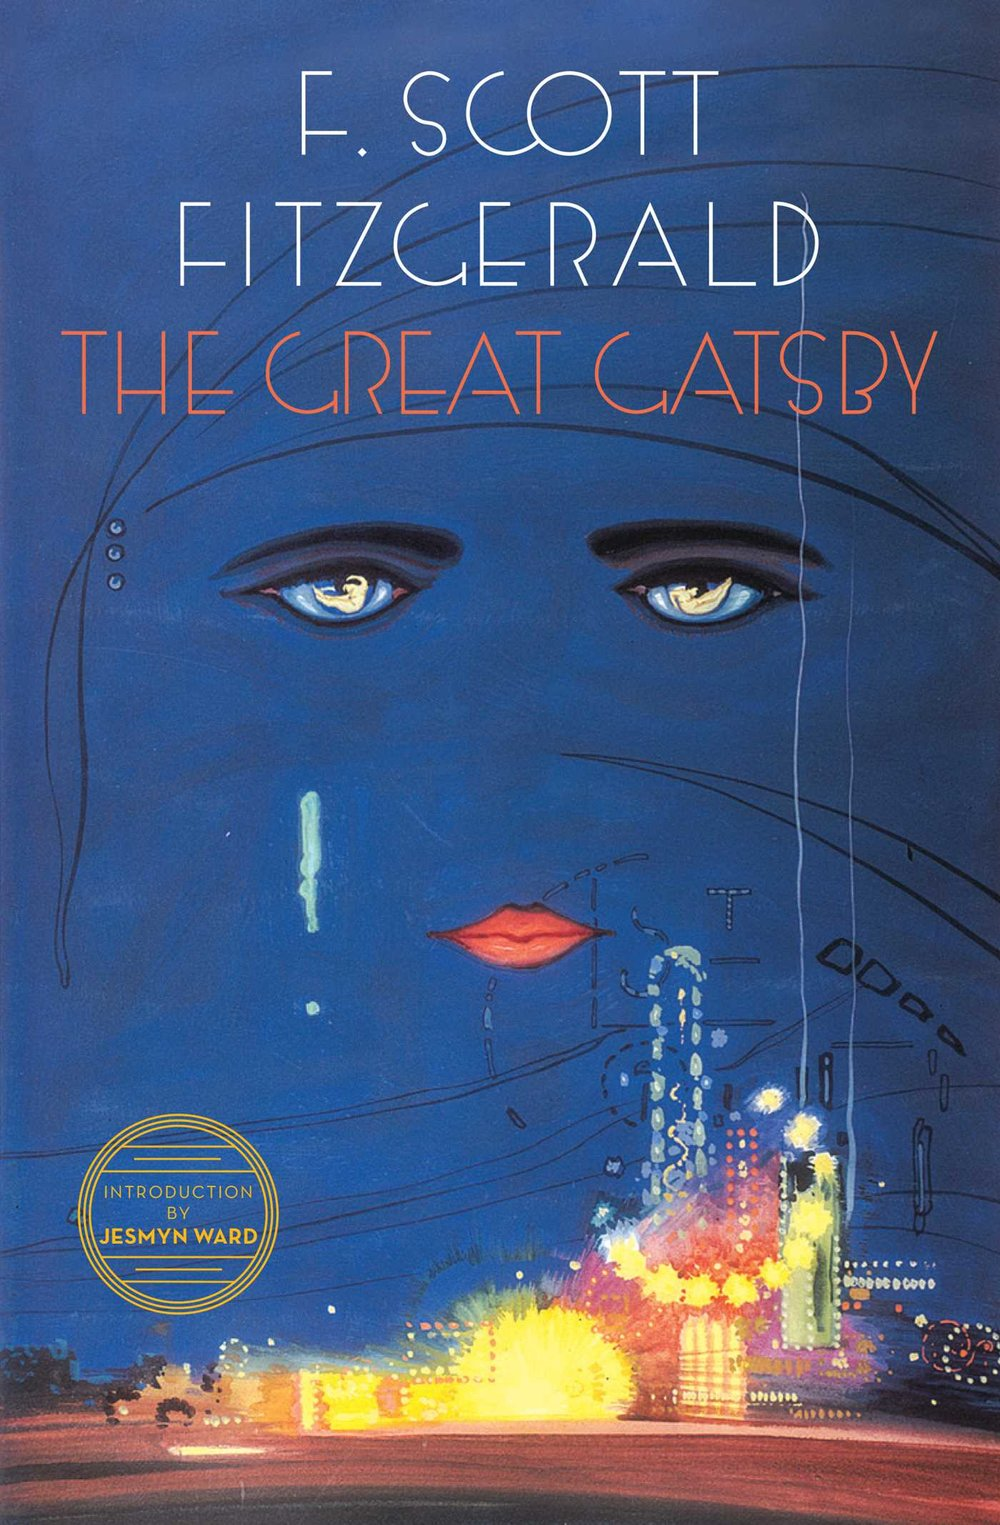 the-great-gatsby-9780743273565_hr.jpg